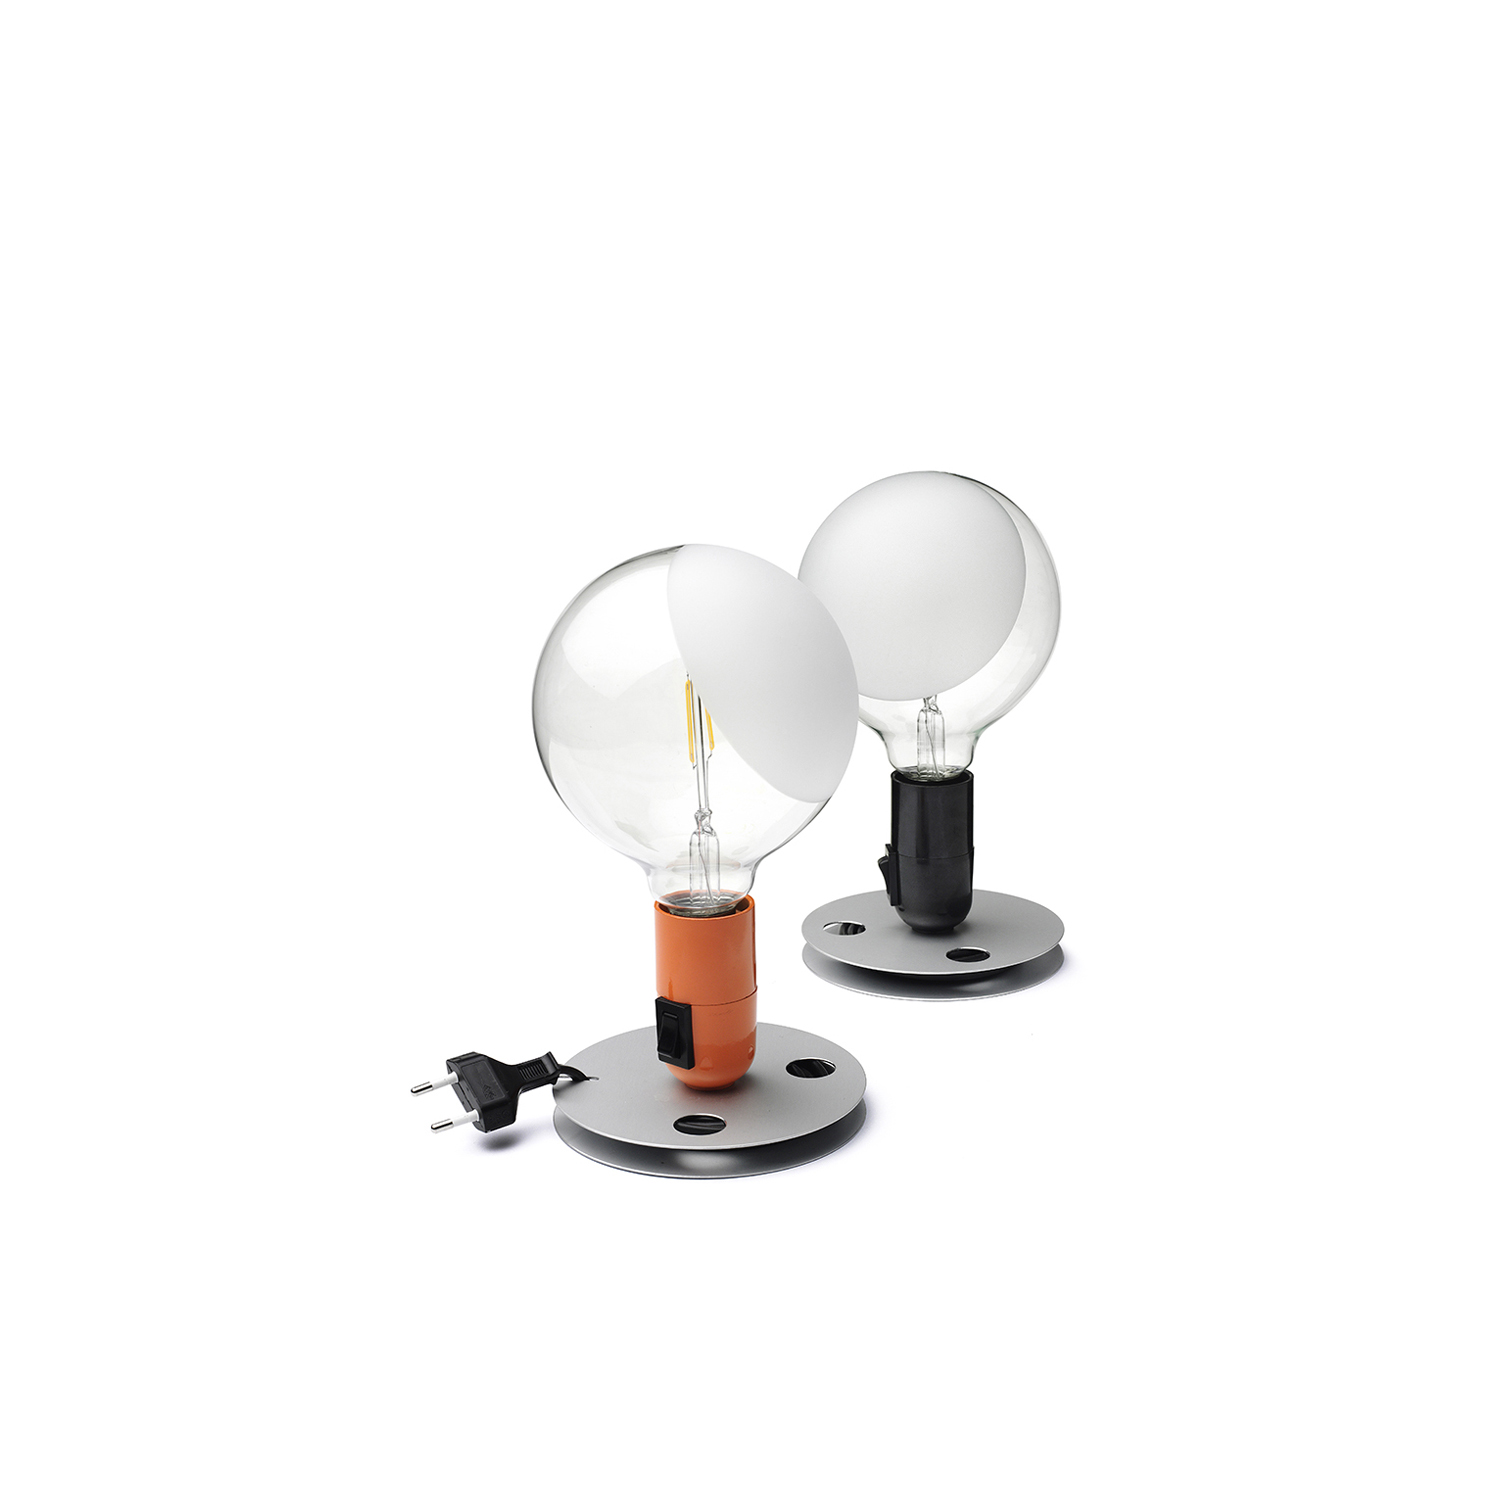 Lampadina Table Lamp - <p>Table lamp providing direct, diffused light. Anodized aluminum base serves to contain excess power cord. Bakelite lamp-holder, painted to match the switch in the orange and black colors. Clear globe lamp is partially sandblasted to diffuse the light.</p>  | Matter of Stuff